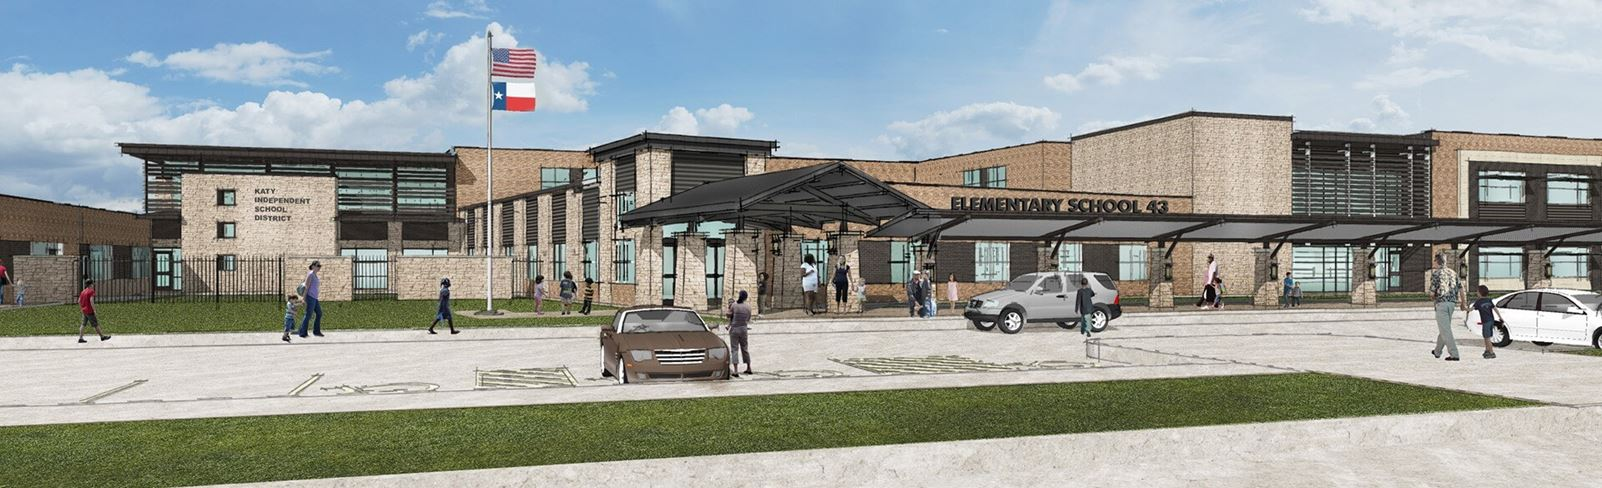 Rendering of future Katy ISD Elementary School in Elyson Community